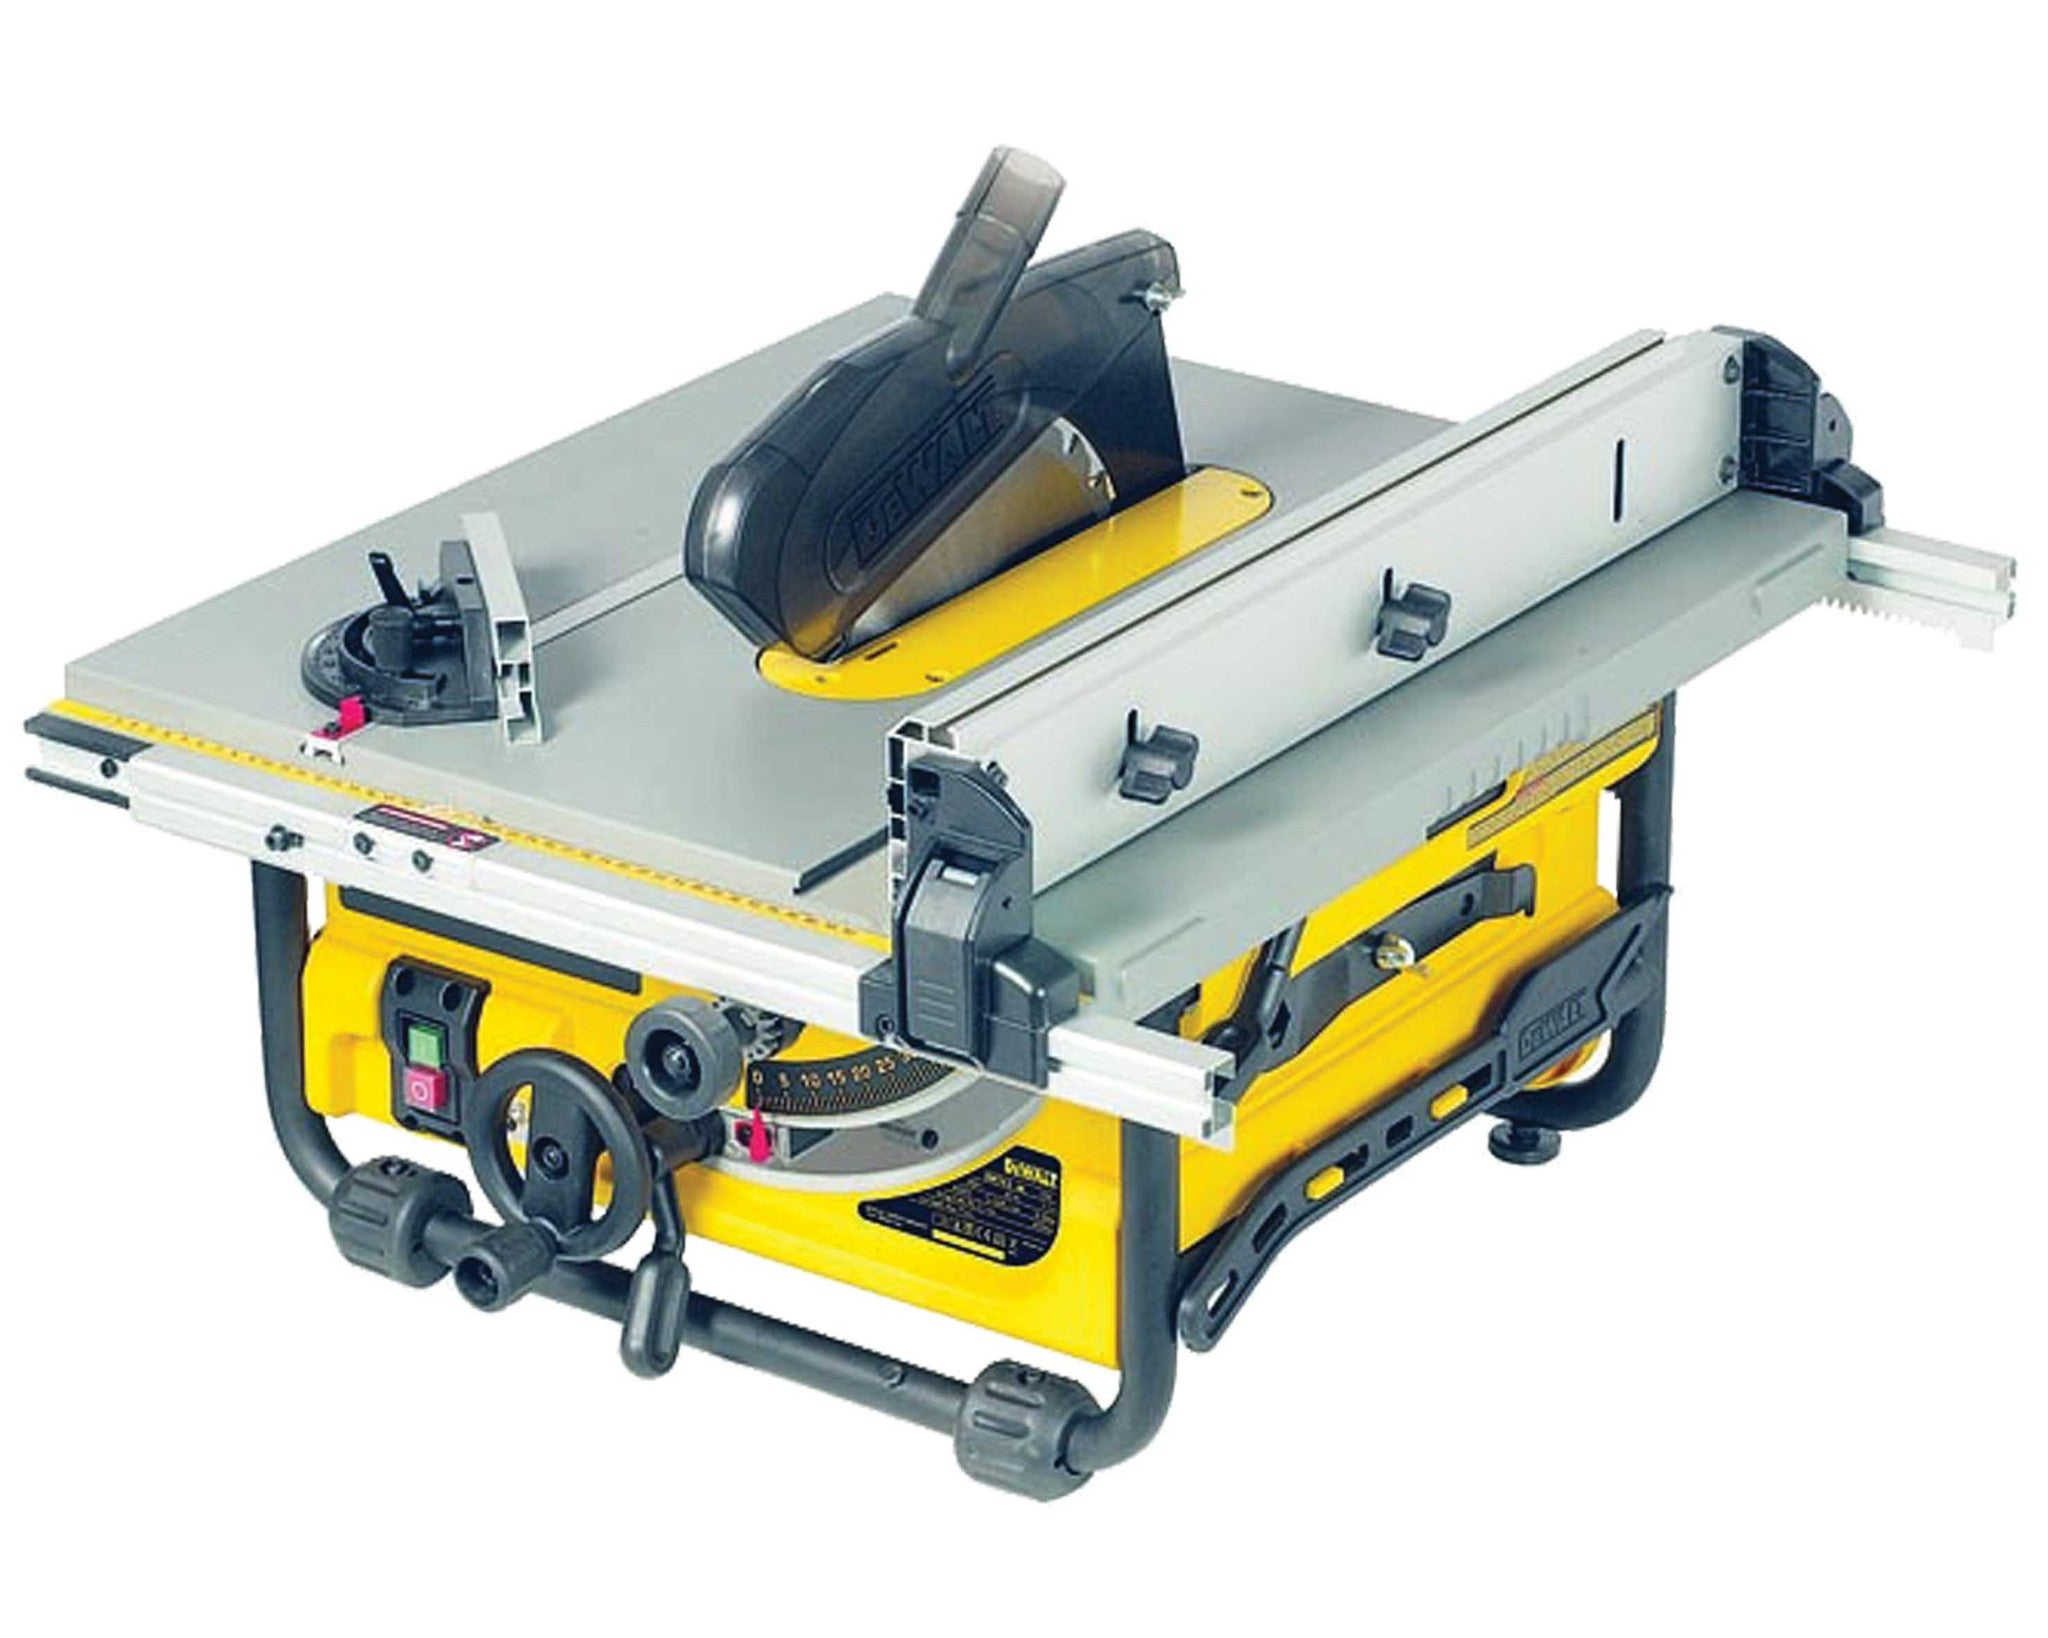 watt bosch on detail shop portable saw xc gts sale table